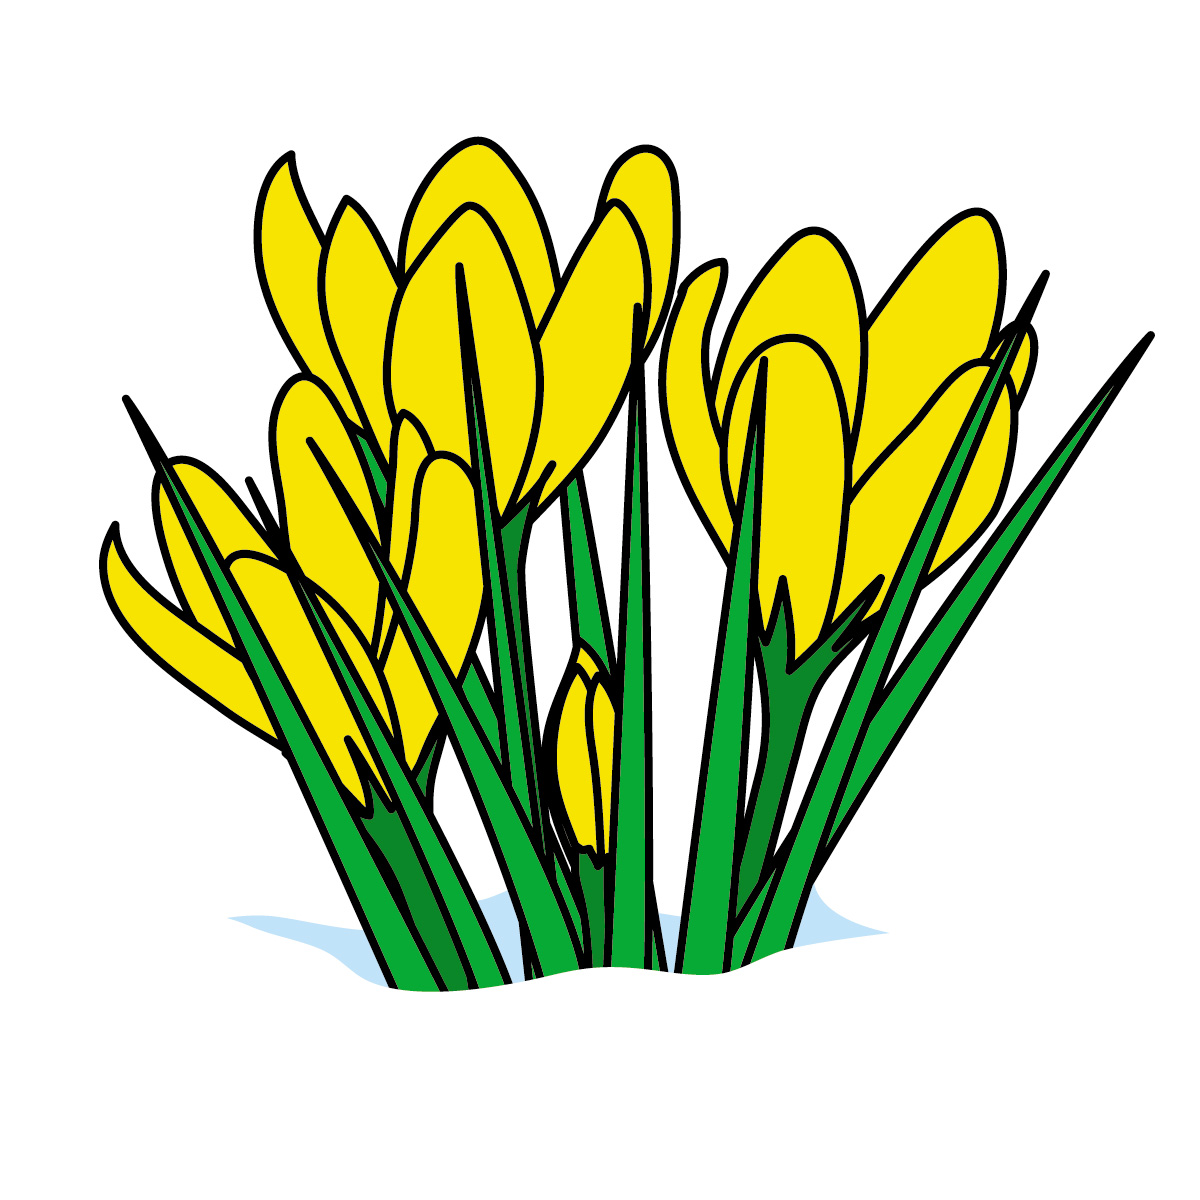 Spring Clip Art Free | Clipart library - Free Clipart Images